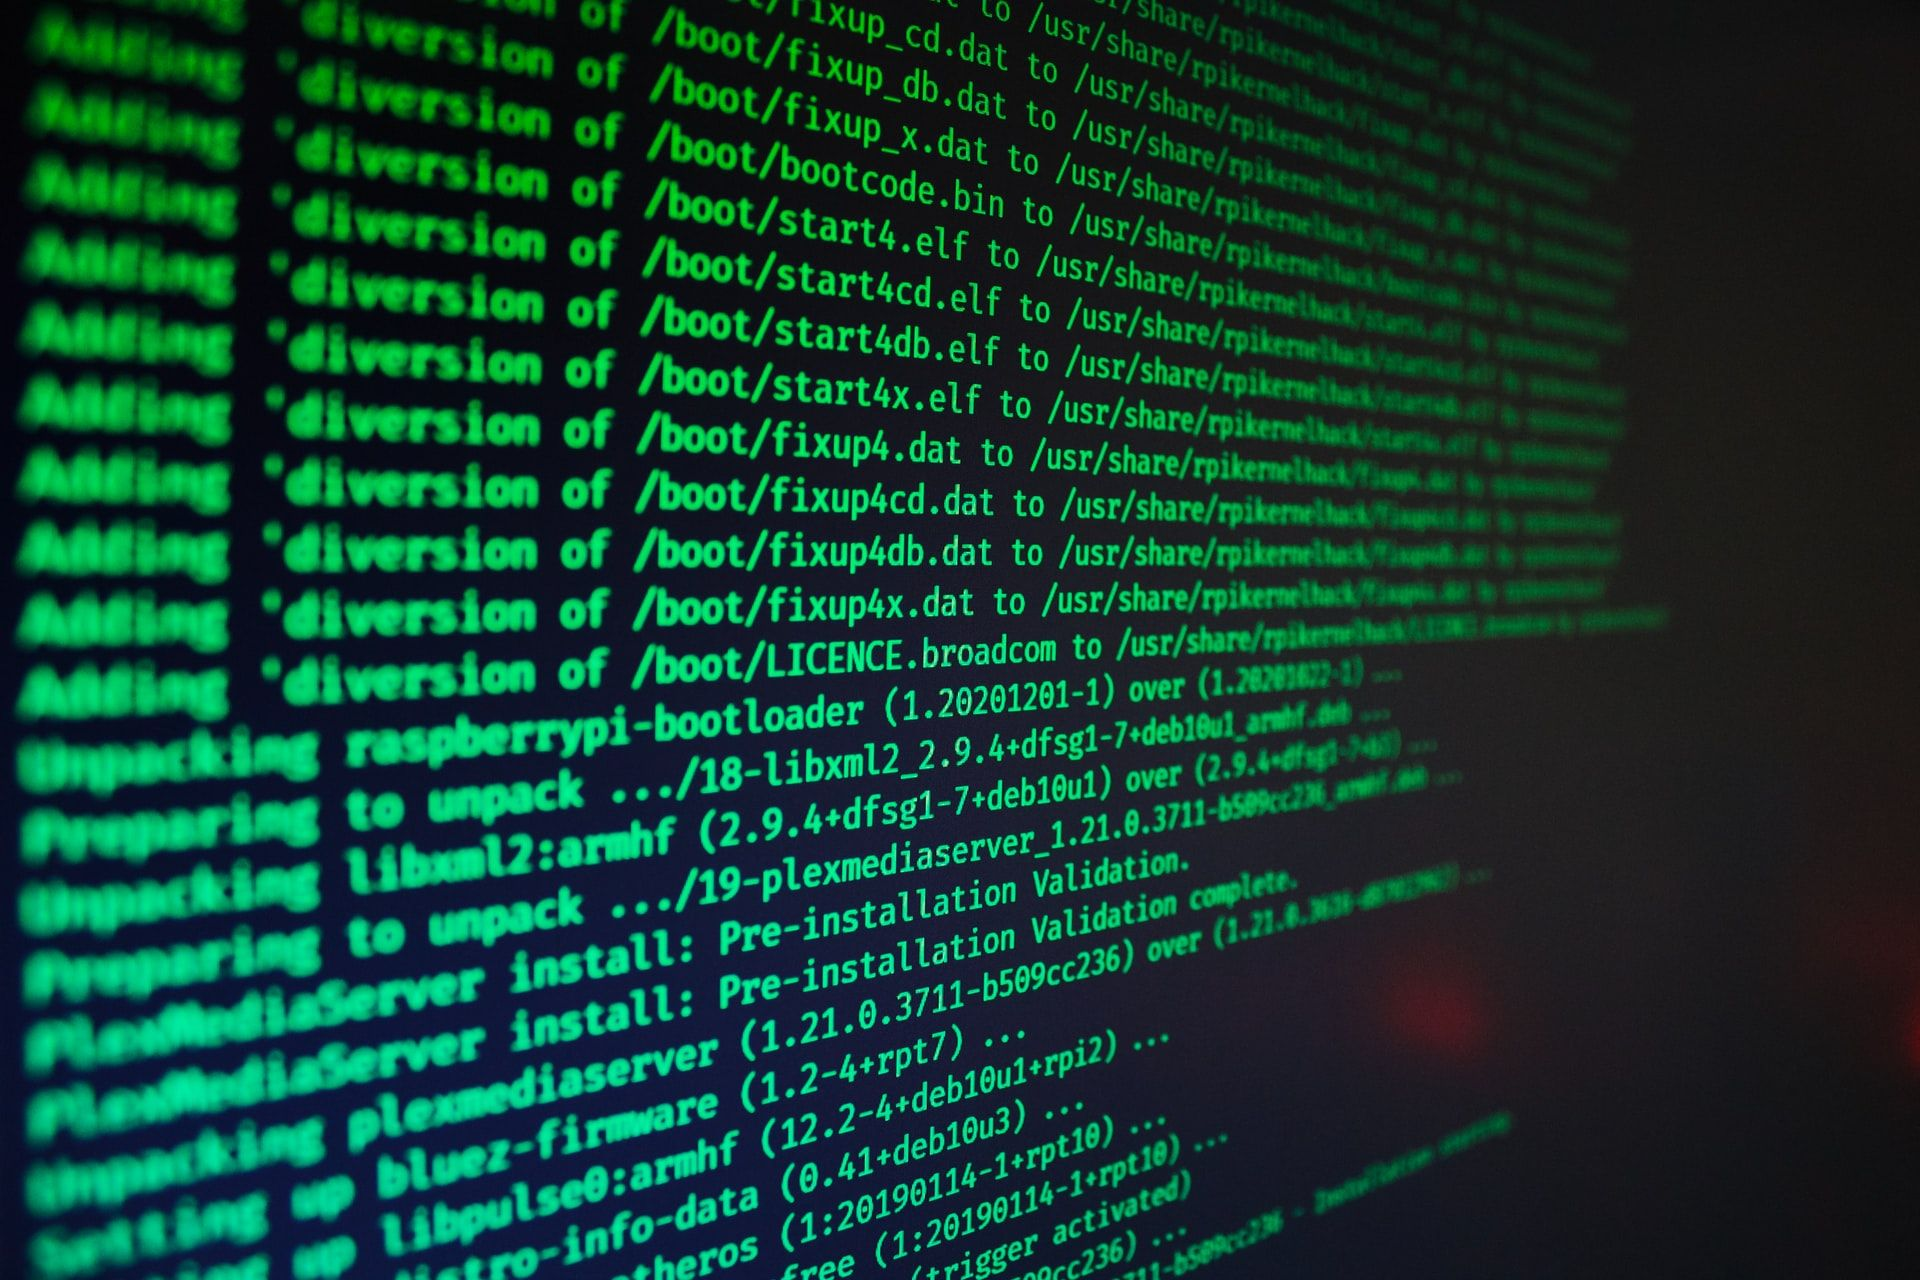 /understanding-cyber-attackers-who-they-are-and-how-they-work-1i7d35ny feature image